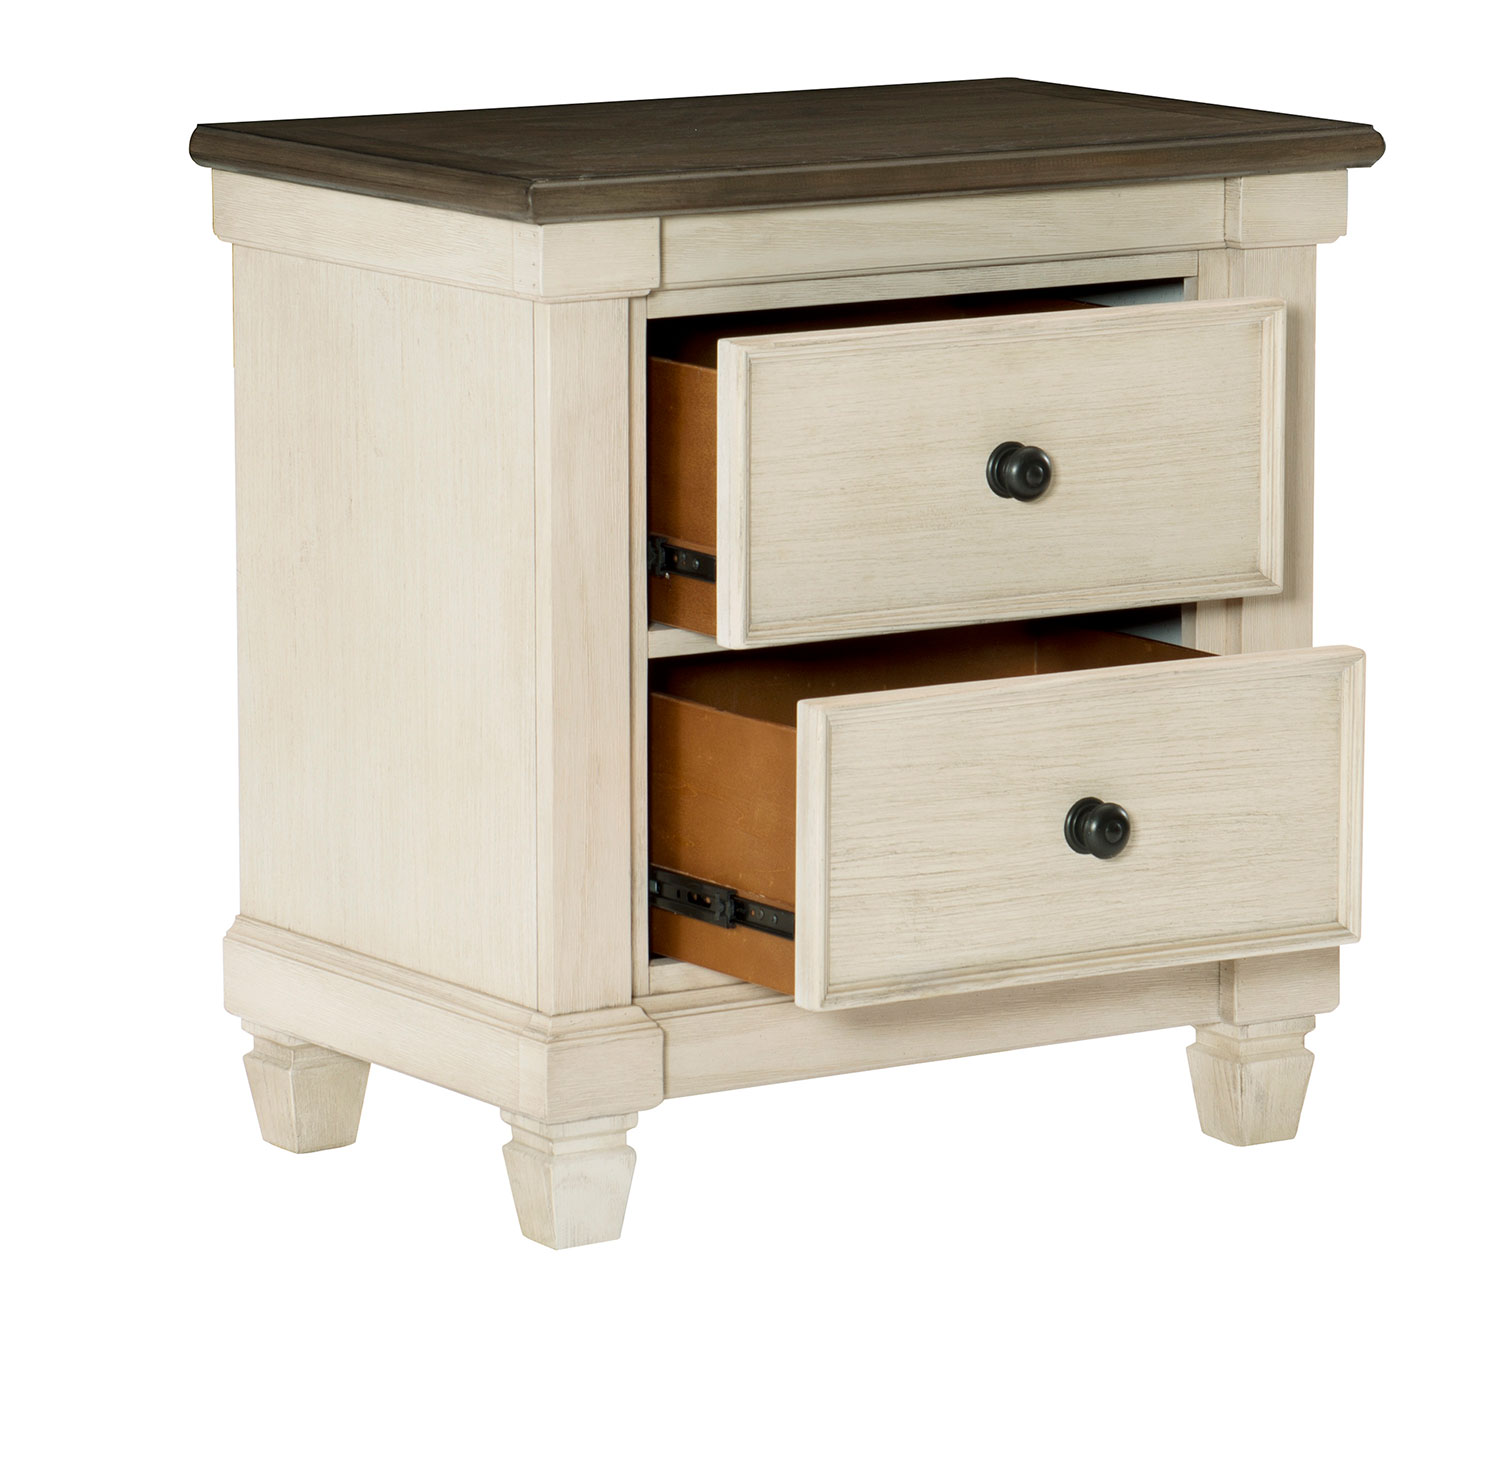 Homelegance Weaver Night Stand - Antique White